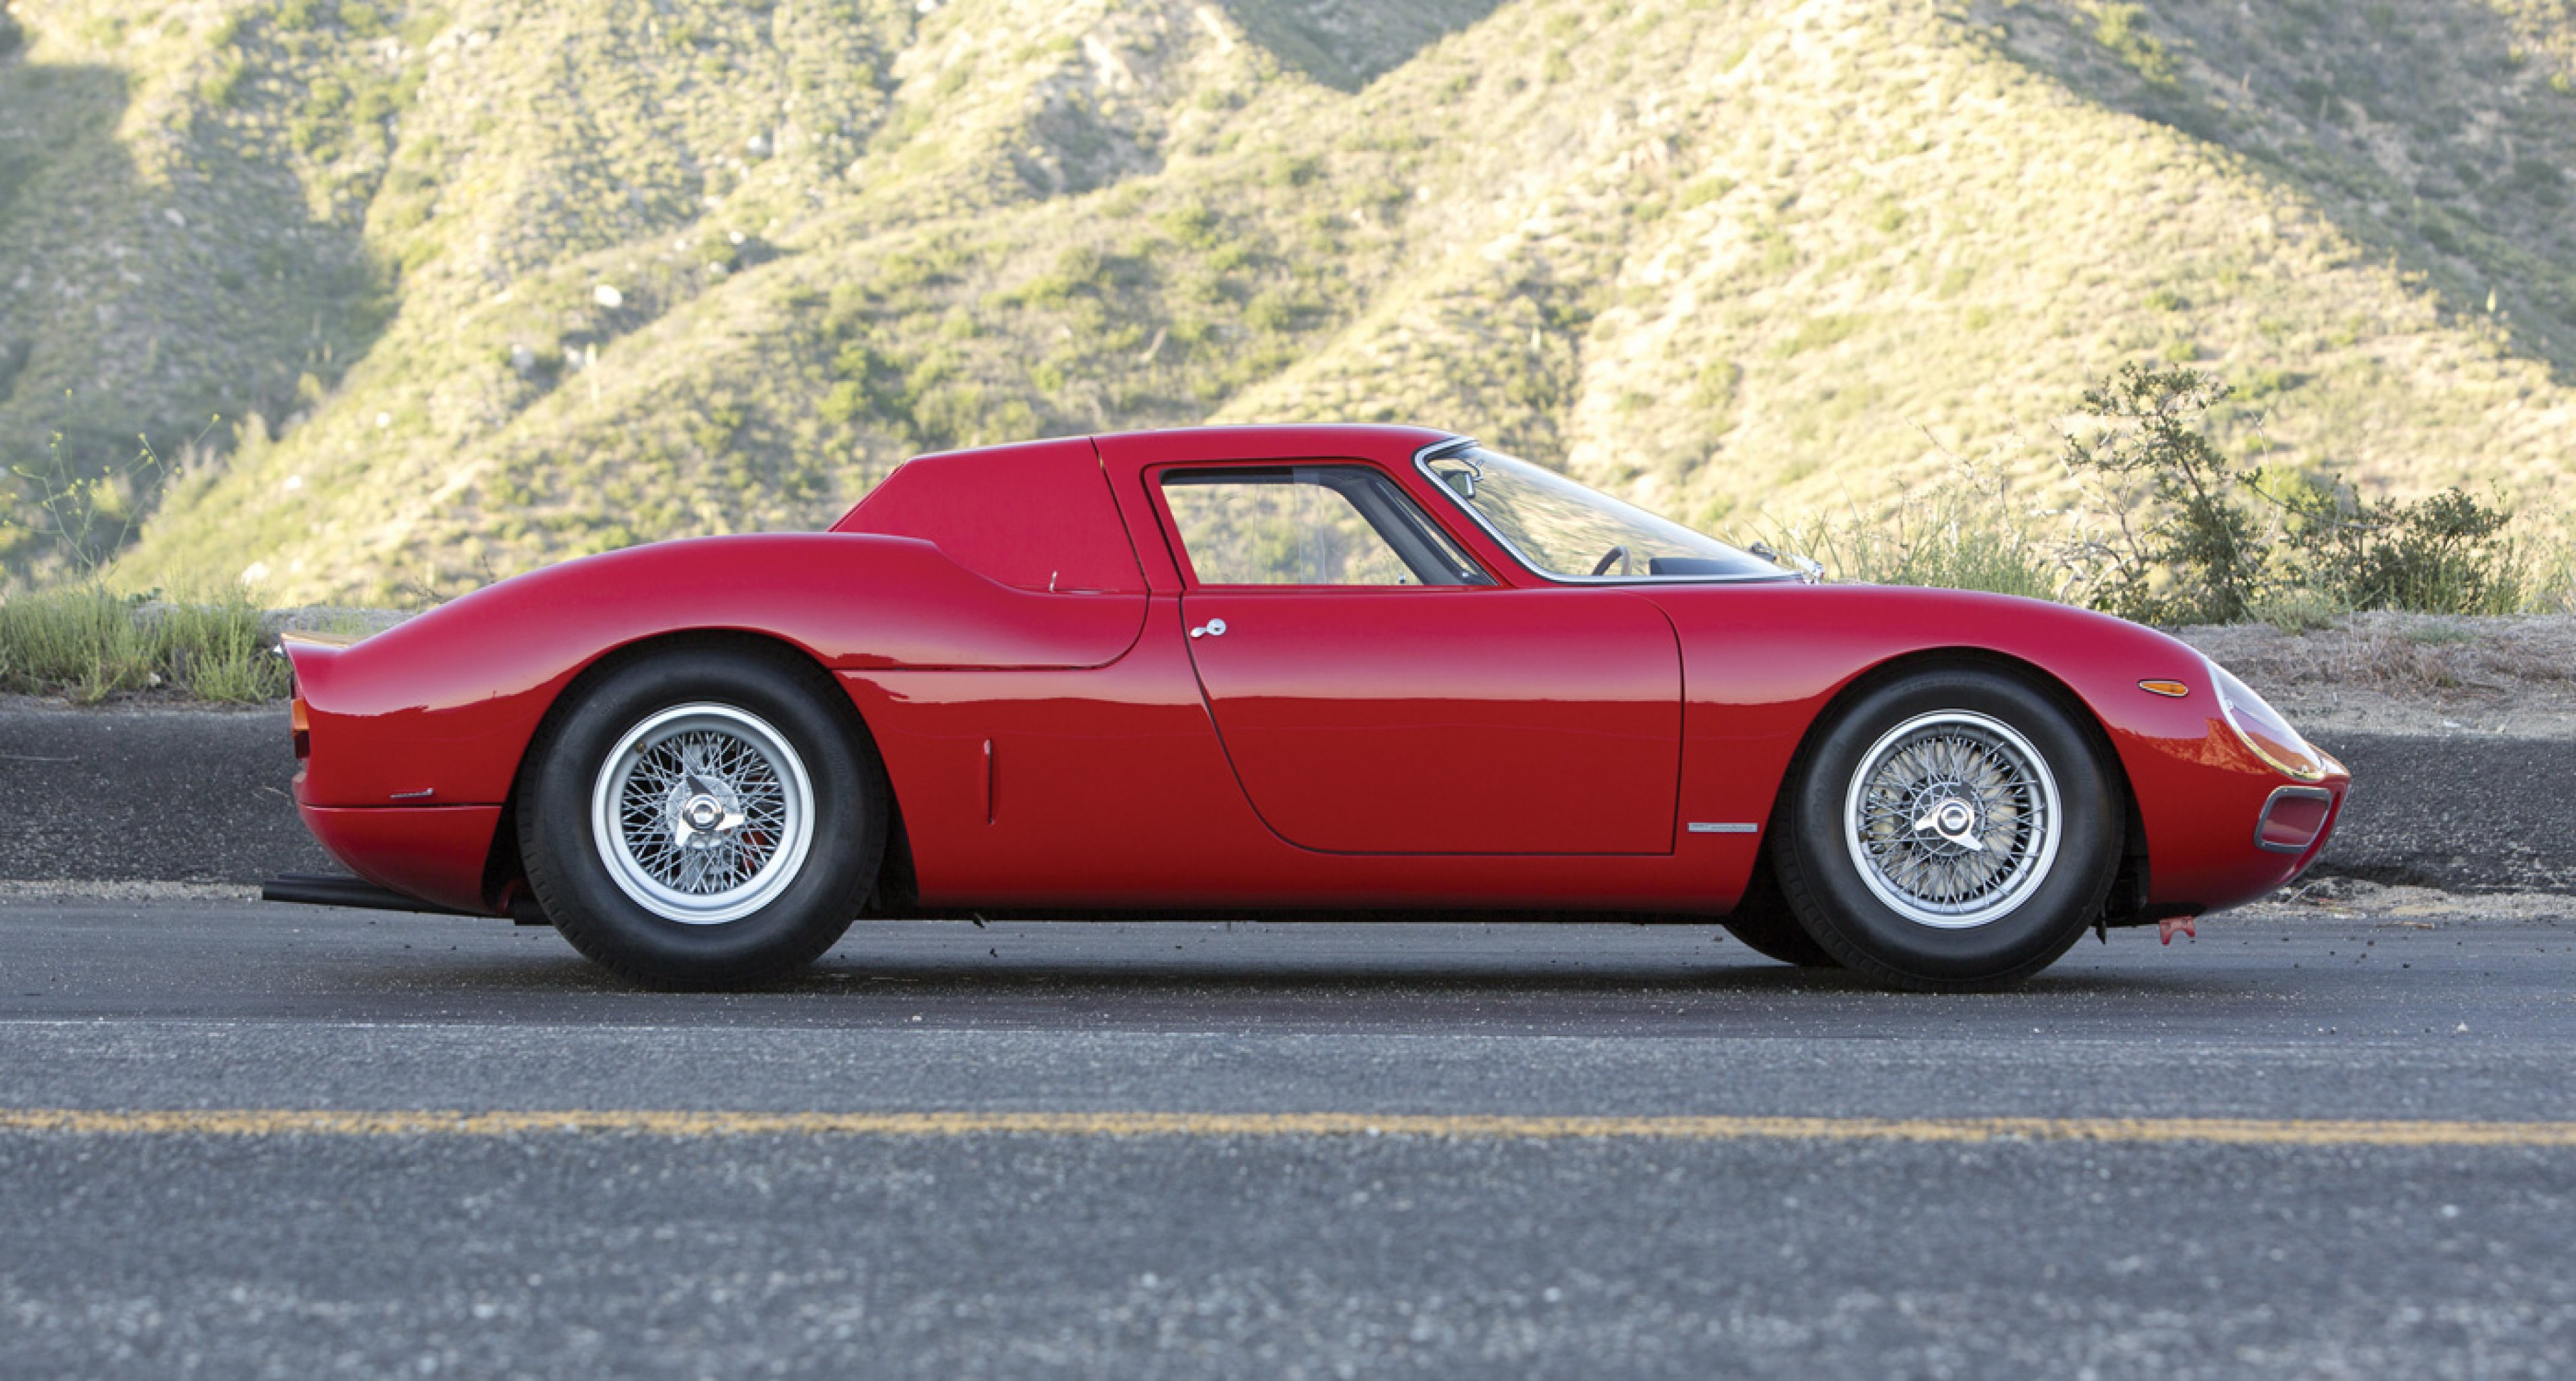 1964 Ferrari 250 LM by Scaglietti to be auctioned at RM's Monterey auction 2014 (price on request)